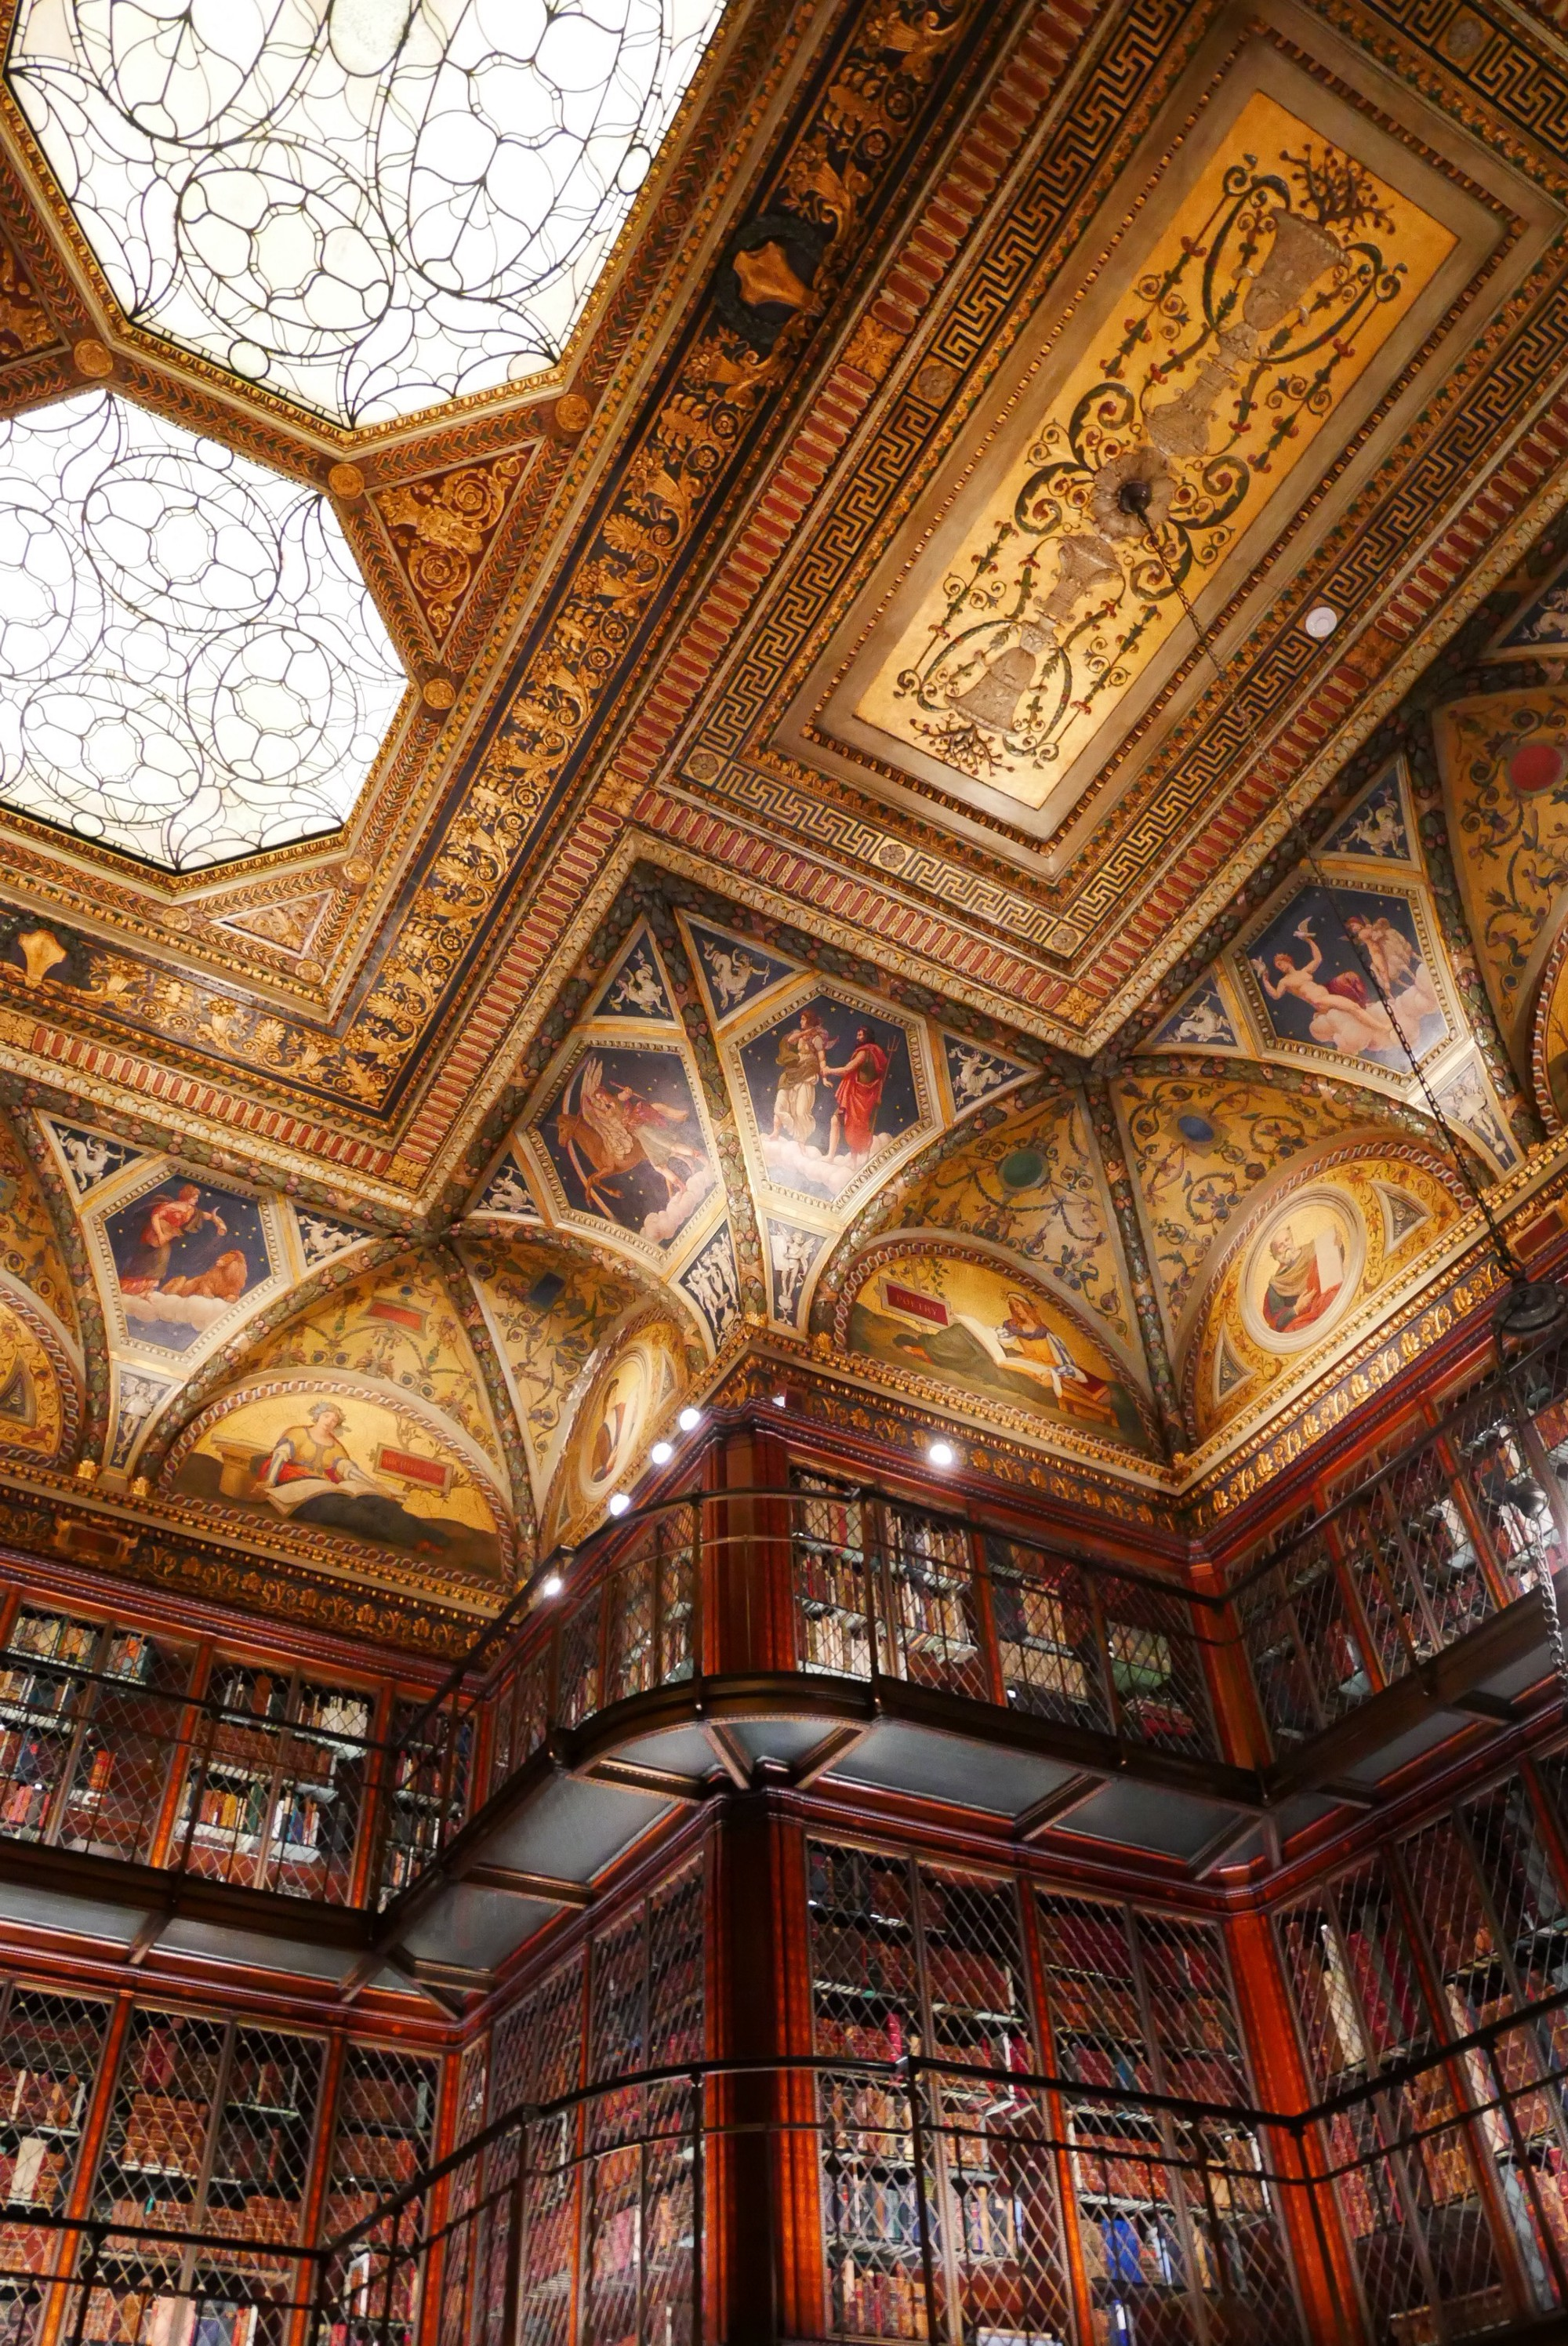 beautiful ceiling in a library